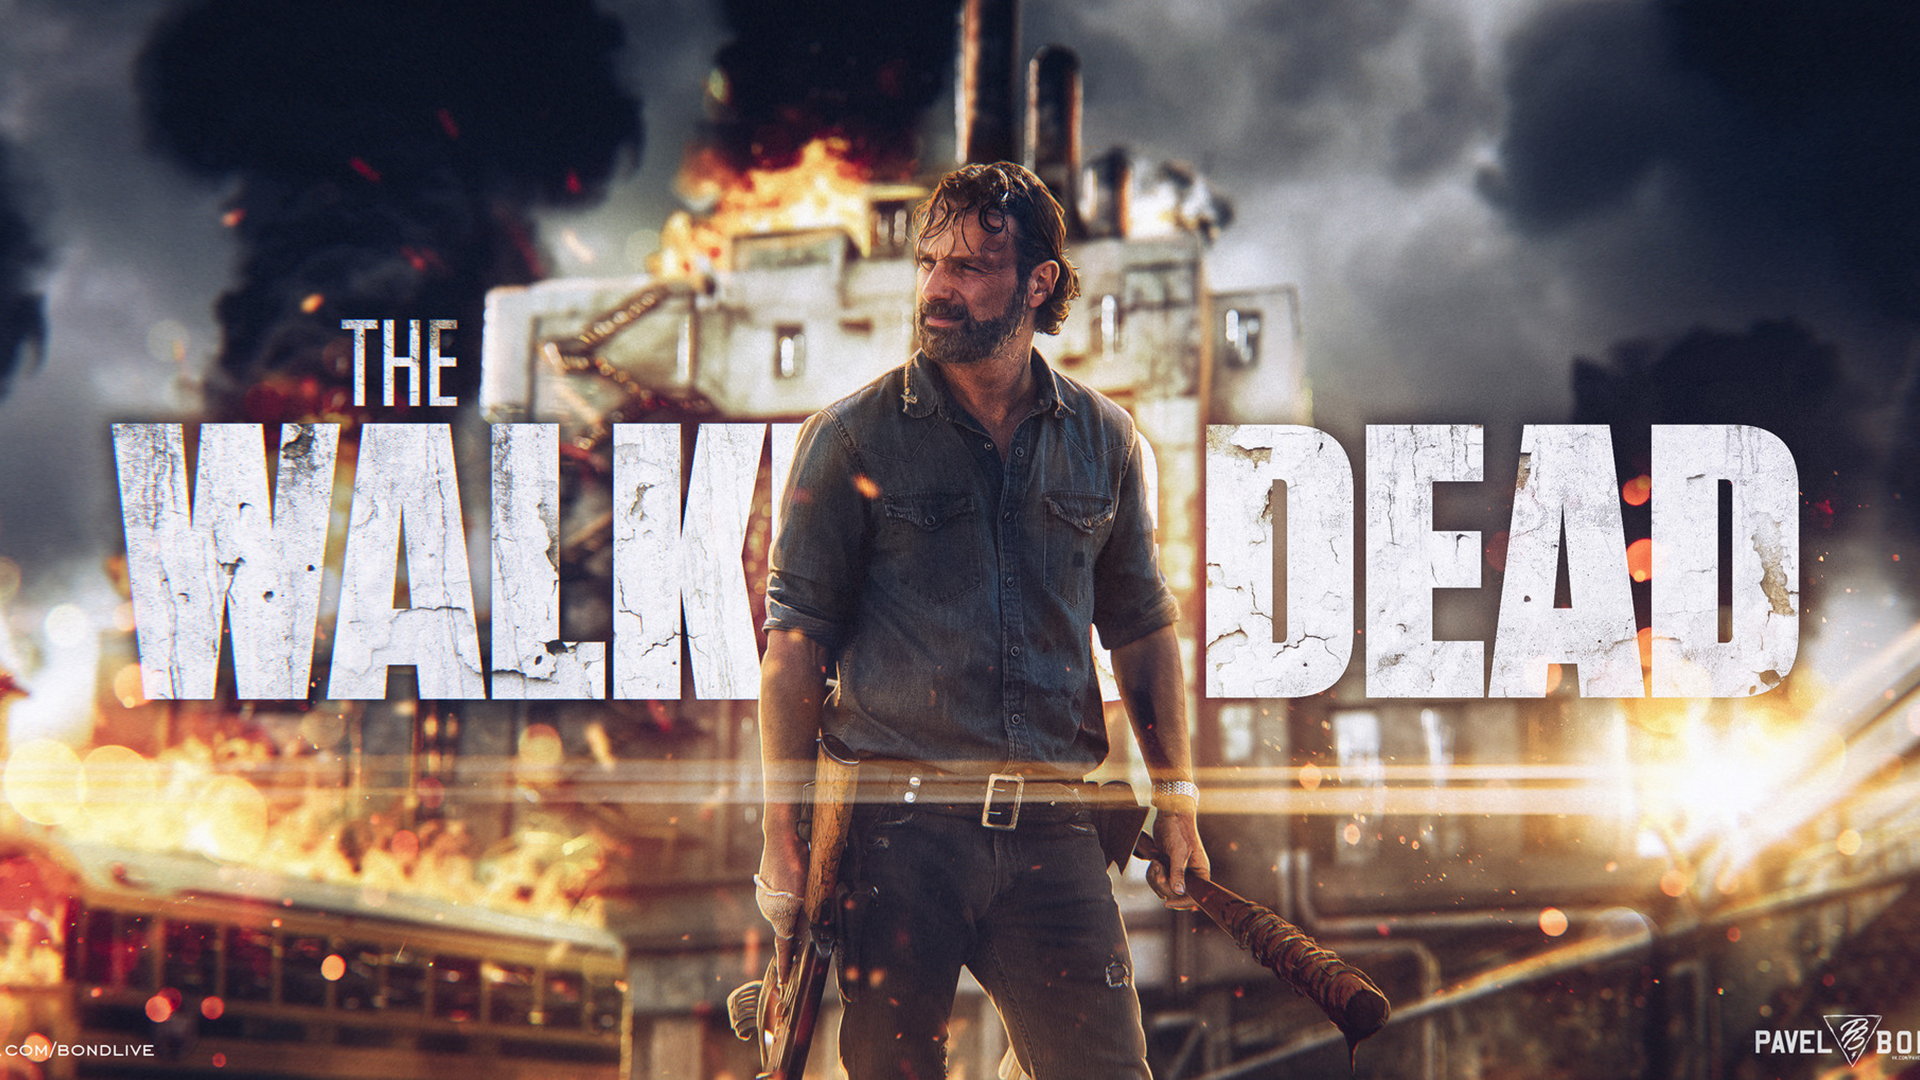 Rew Lincoln As Rick Grimes In The Walking Dead Wallpapers